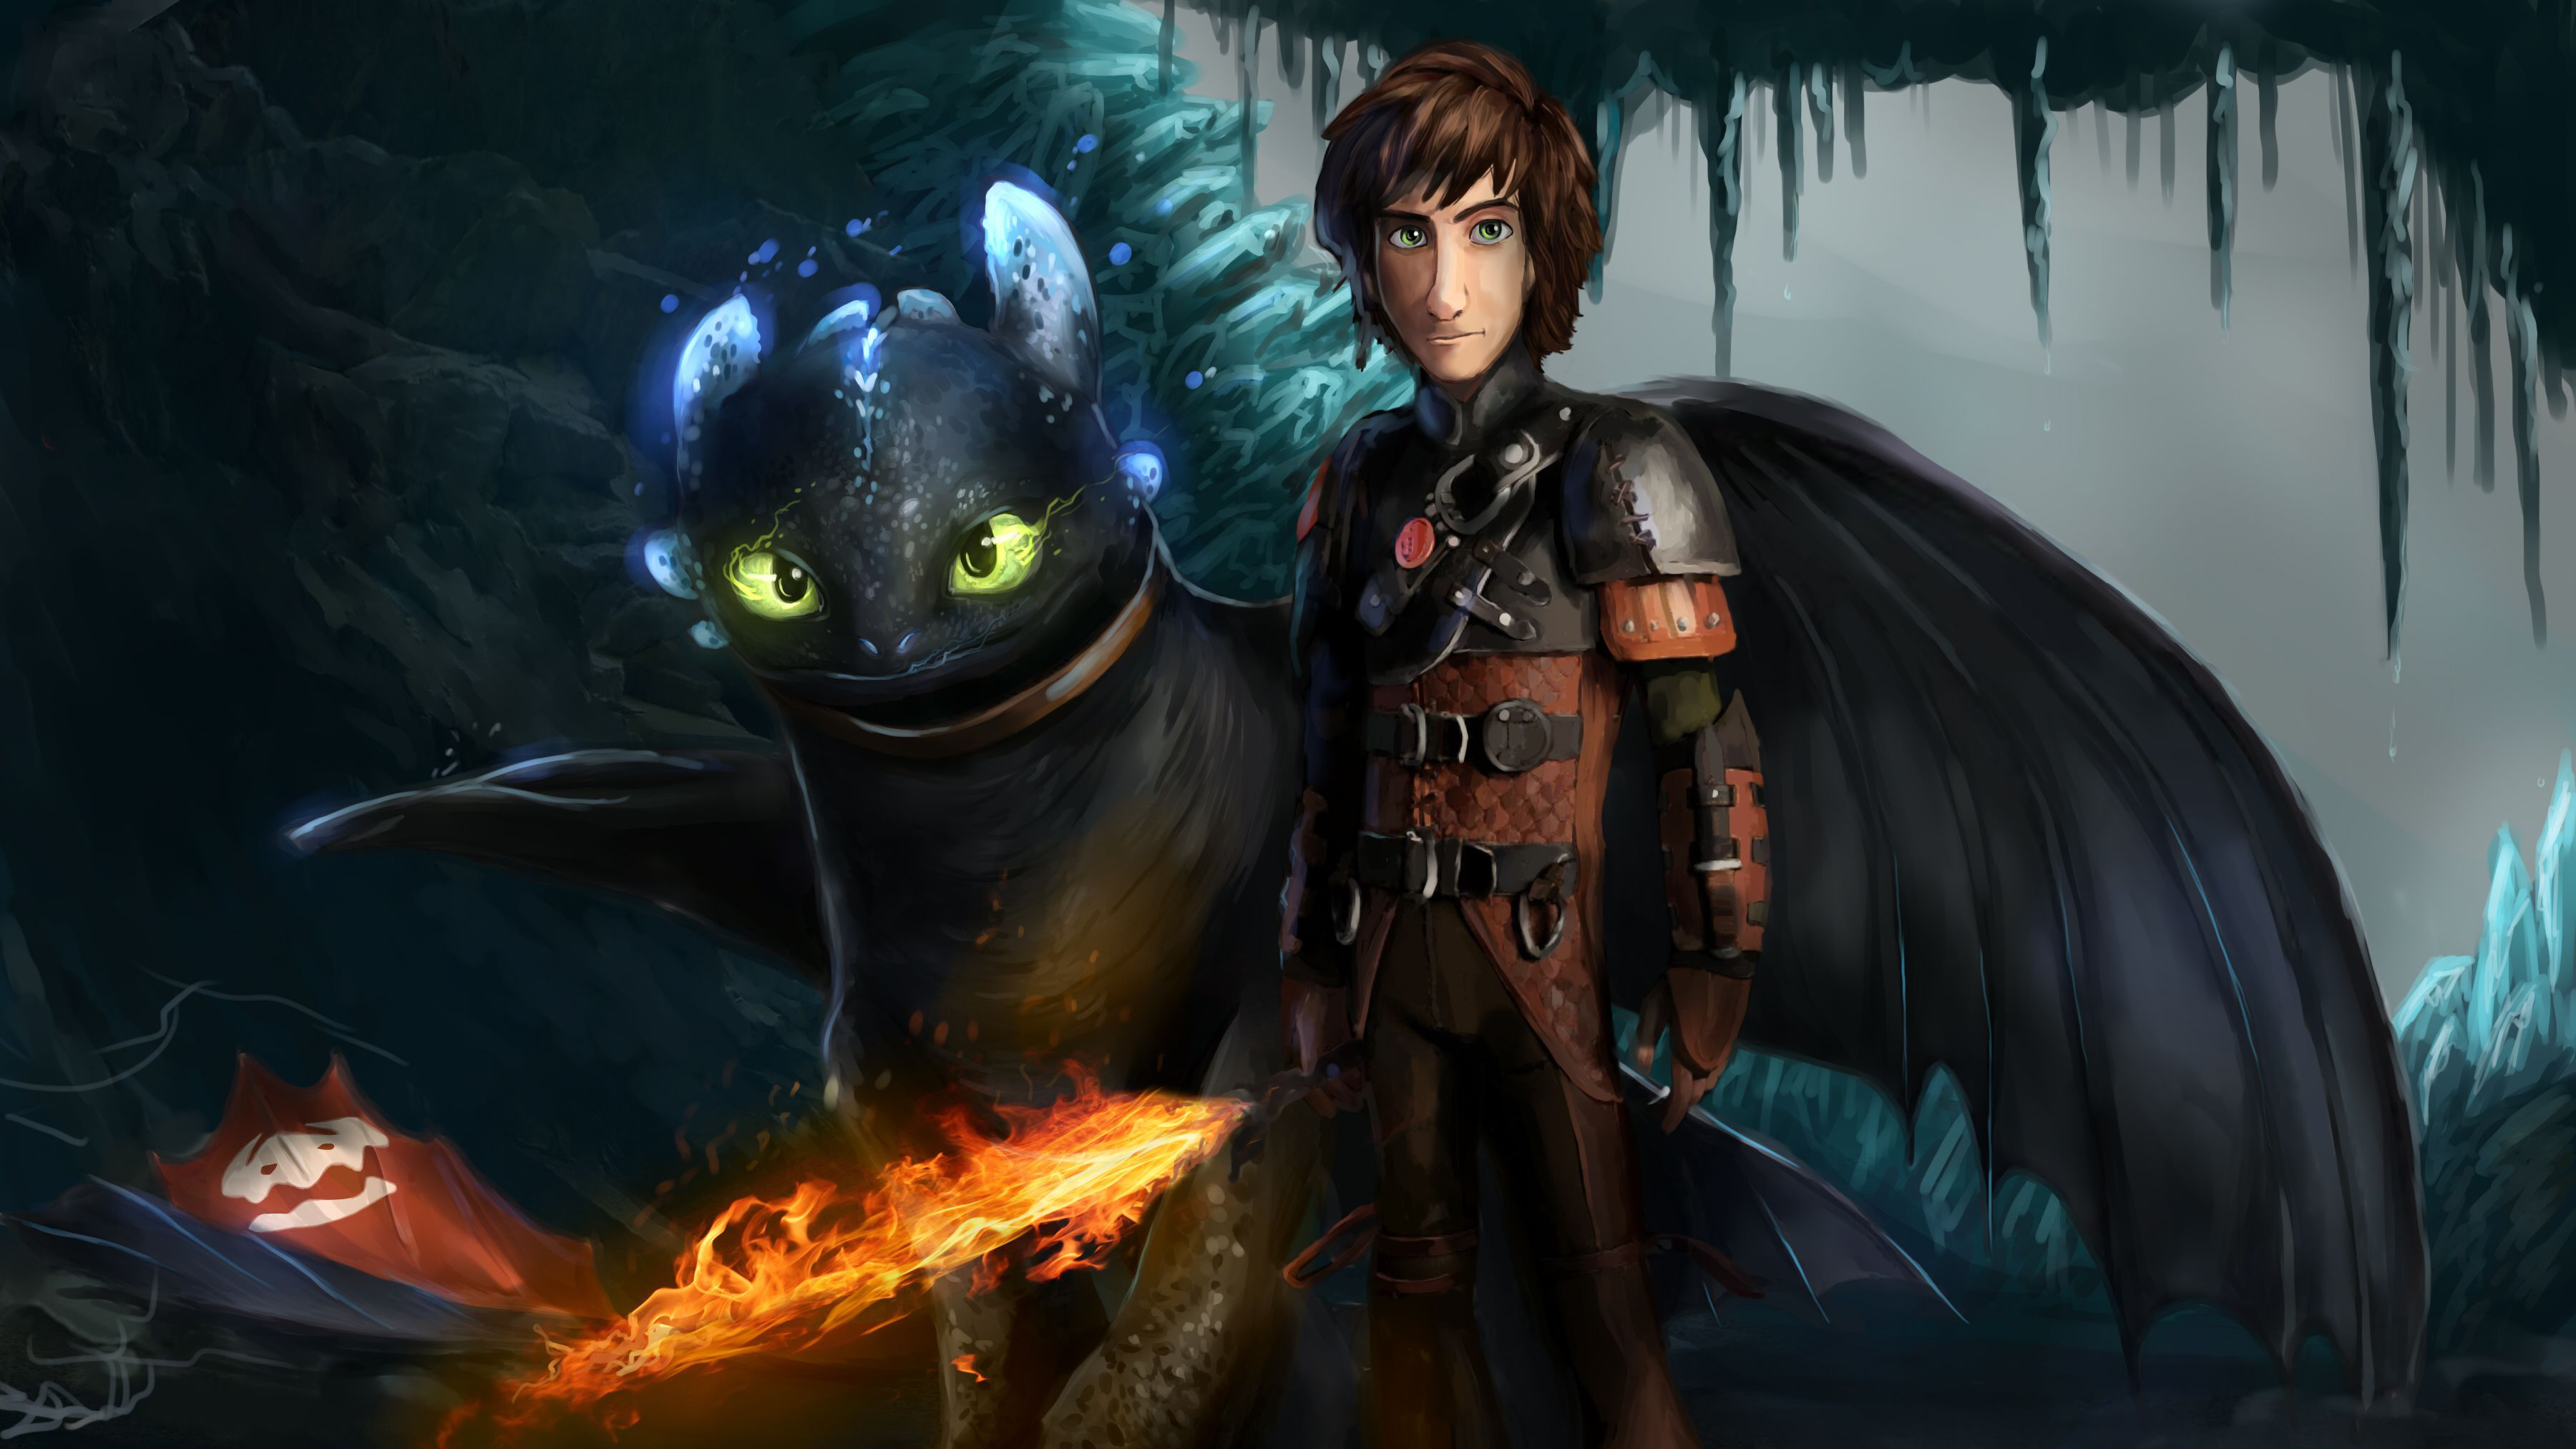 How To Train Your Dragon The Hidden World Art Hd Movies 4k Wallpapers Images Backgrounds Photos And Pictures